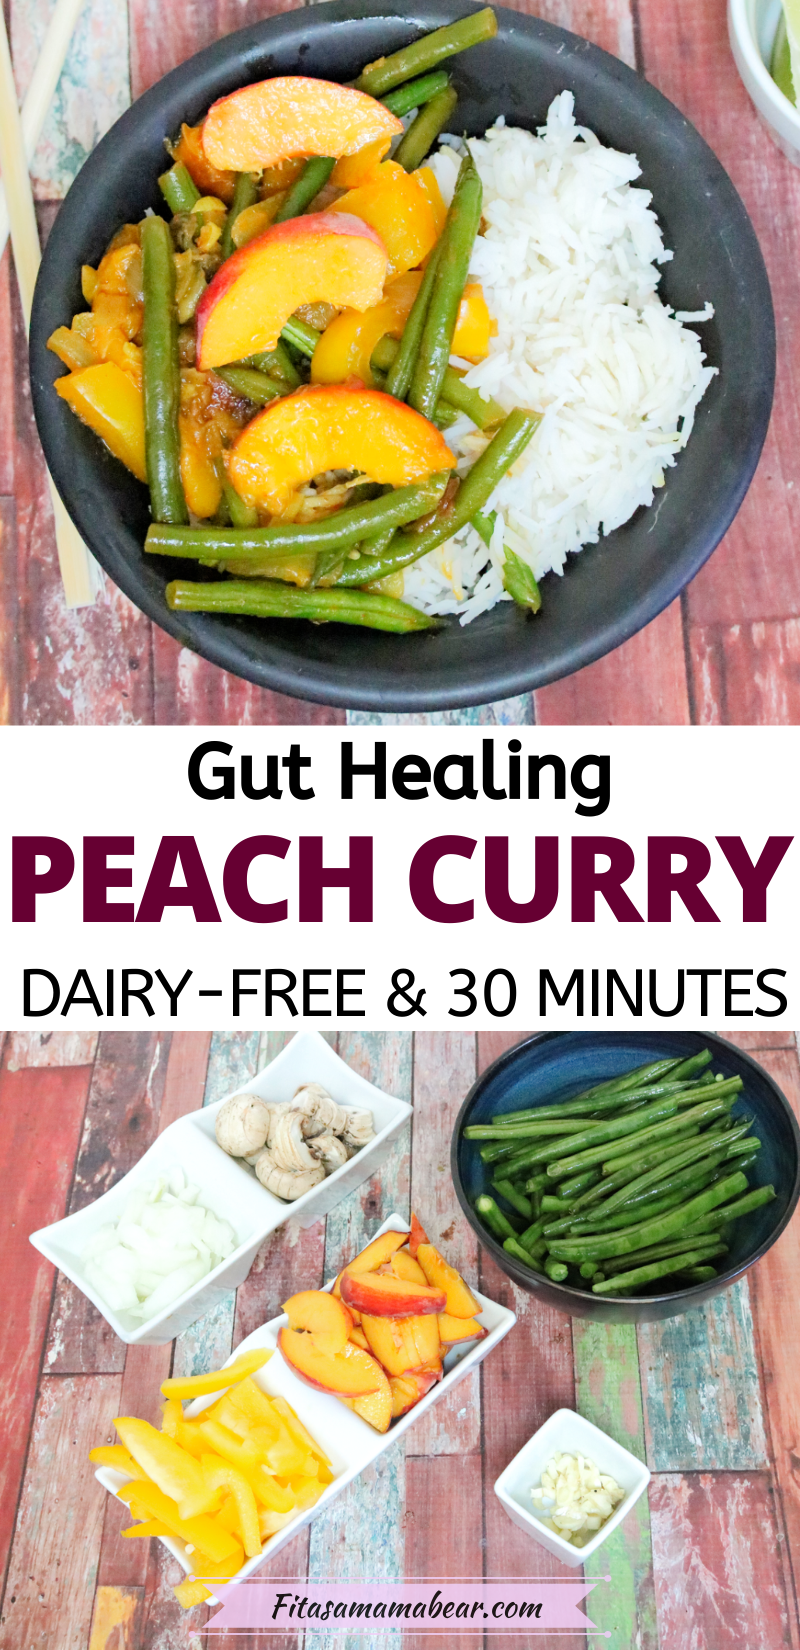 Pinterest image with text: top photo of sweet peach curry in a black bowl, lower image of the ingredients used to make it